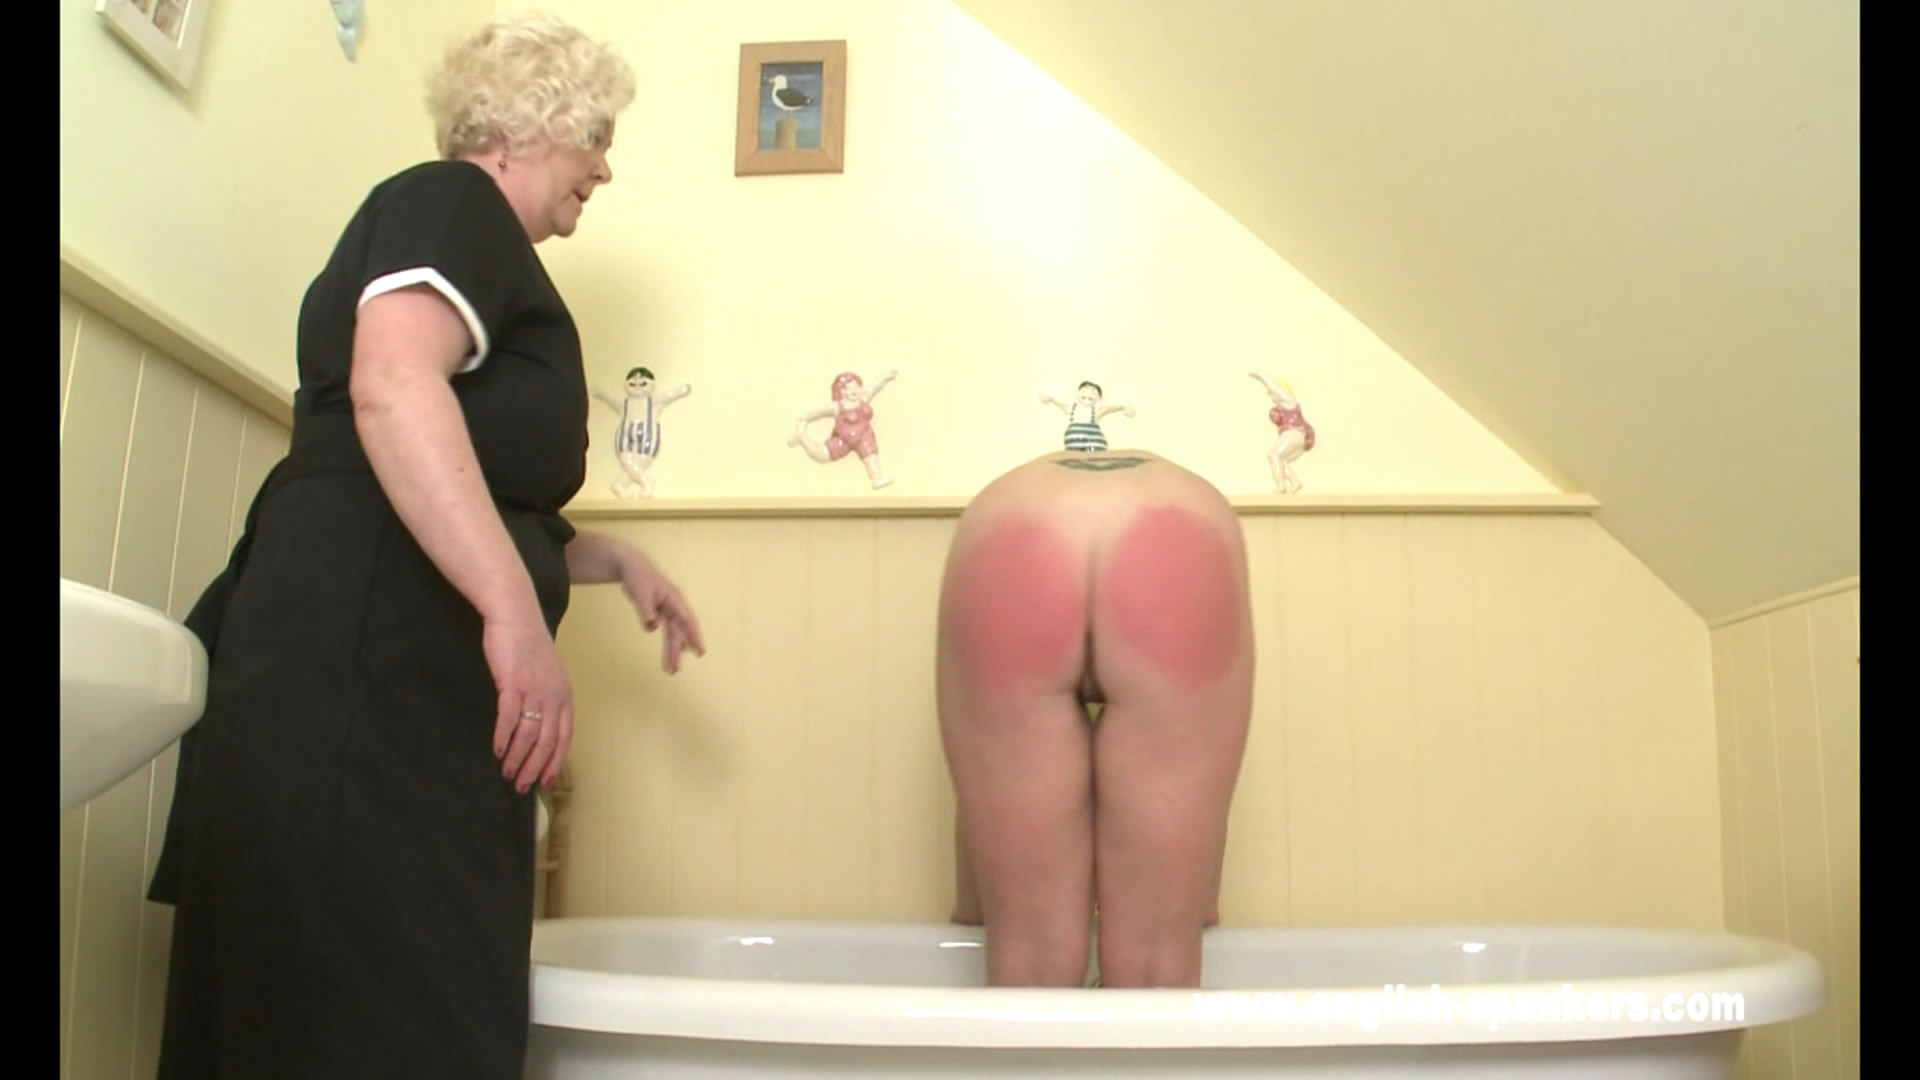 English Spankers – MP4/Full HD – Maid To Control